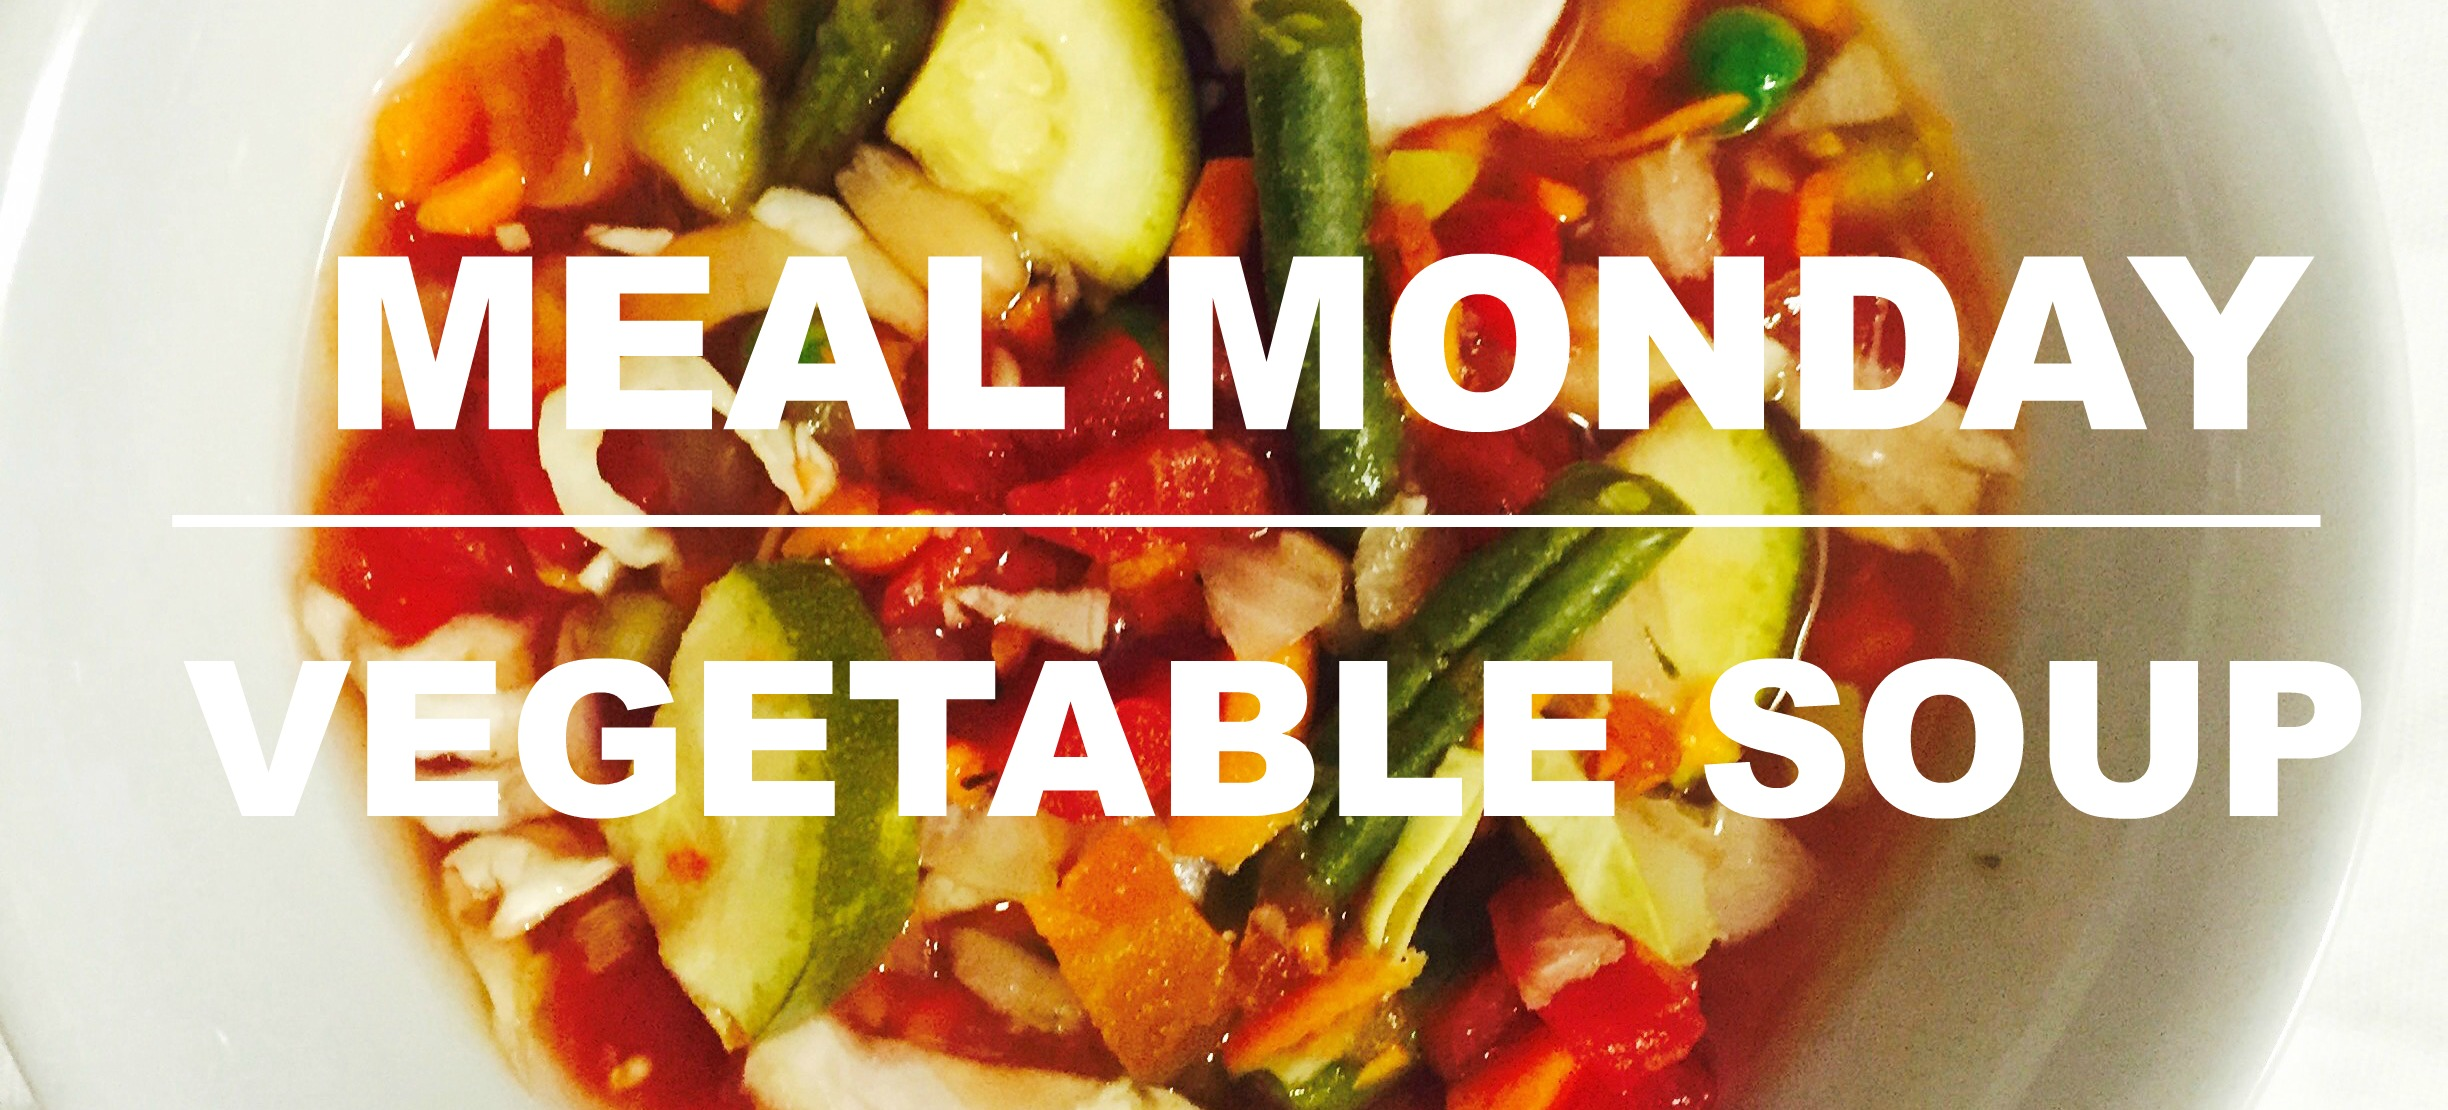 Meal Monday Vegetable Soup banner